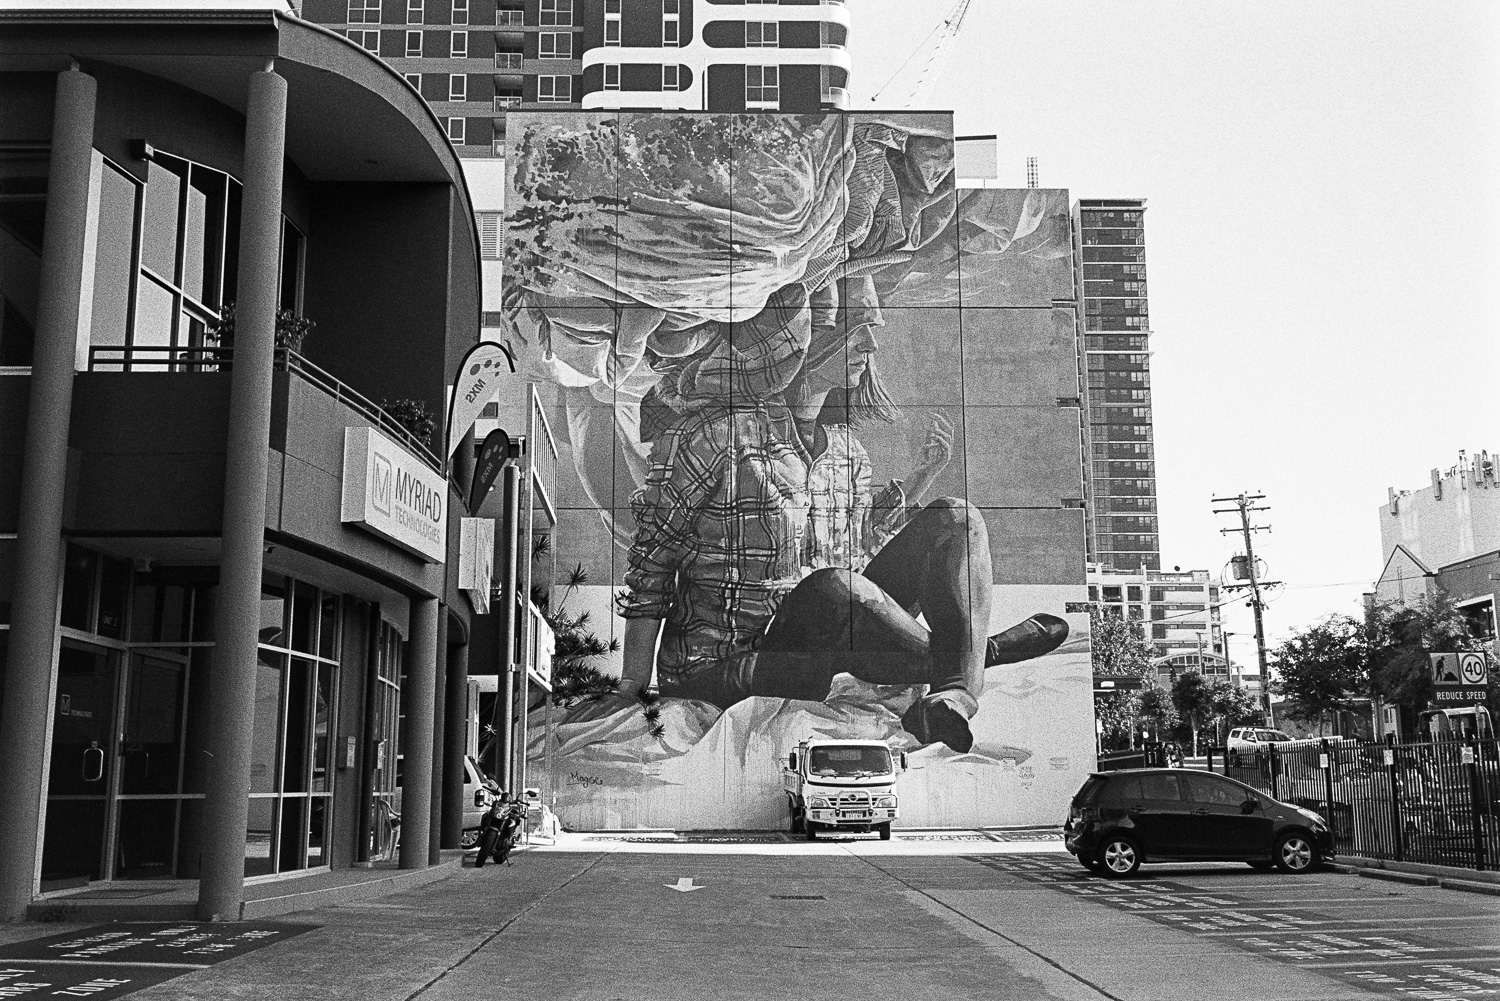 I've never seen this mural. Brilliant.